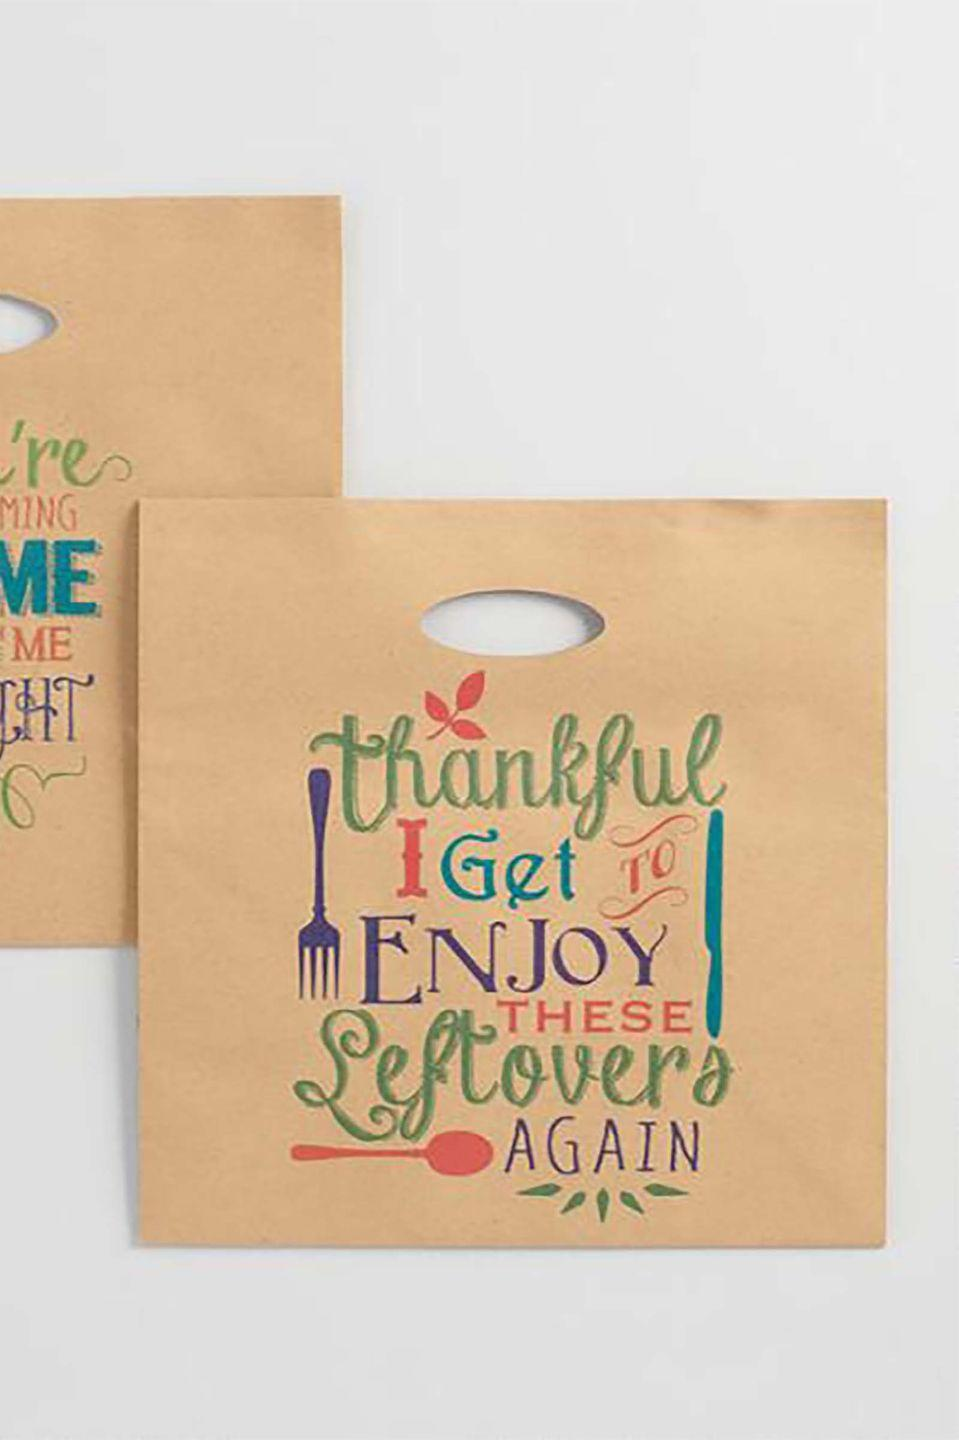 """<p>So long, mismatched Tupperware! This year, pack up your Thanksgiving leftovers in stylish to-go bags from Cost Plus World Market. They'll let guests enjoy a second helping without the guilt of unreturned containers.<br></p><p><strong><a class=""""link rapid-noclick-resp"""" href=""""https://go.redirectingat.com?id=74968X1596630&url=https%3A%2F%2Fwww.etsy.com%2Fsearch%3Fq%3Dpaper%2Bleftover%2Bthanksgiving%2Bbag&sref=https%3A%2F%2Fwww.countryliving.com%2Fentertaining%2Fg1371%2Fthanksgiving-decorations%2F"""" rel=""""nofollow noopener"""" target=""""_blank"""" data-ylk=""""slk:SHOP LEFTOVER THANKSGIVING BAGS"""">SHOP LEFTOVER THANKSGIVING BAGS</a></strong></p>"""